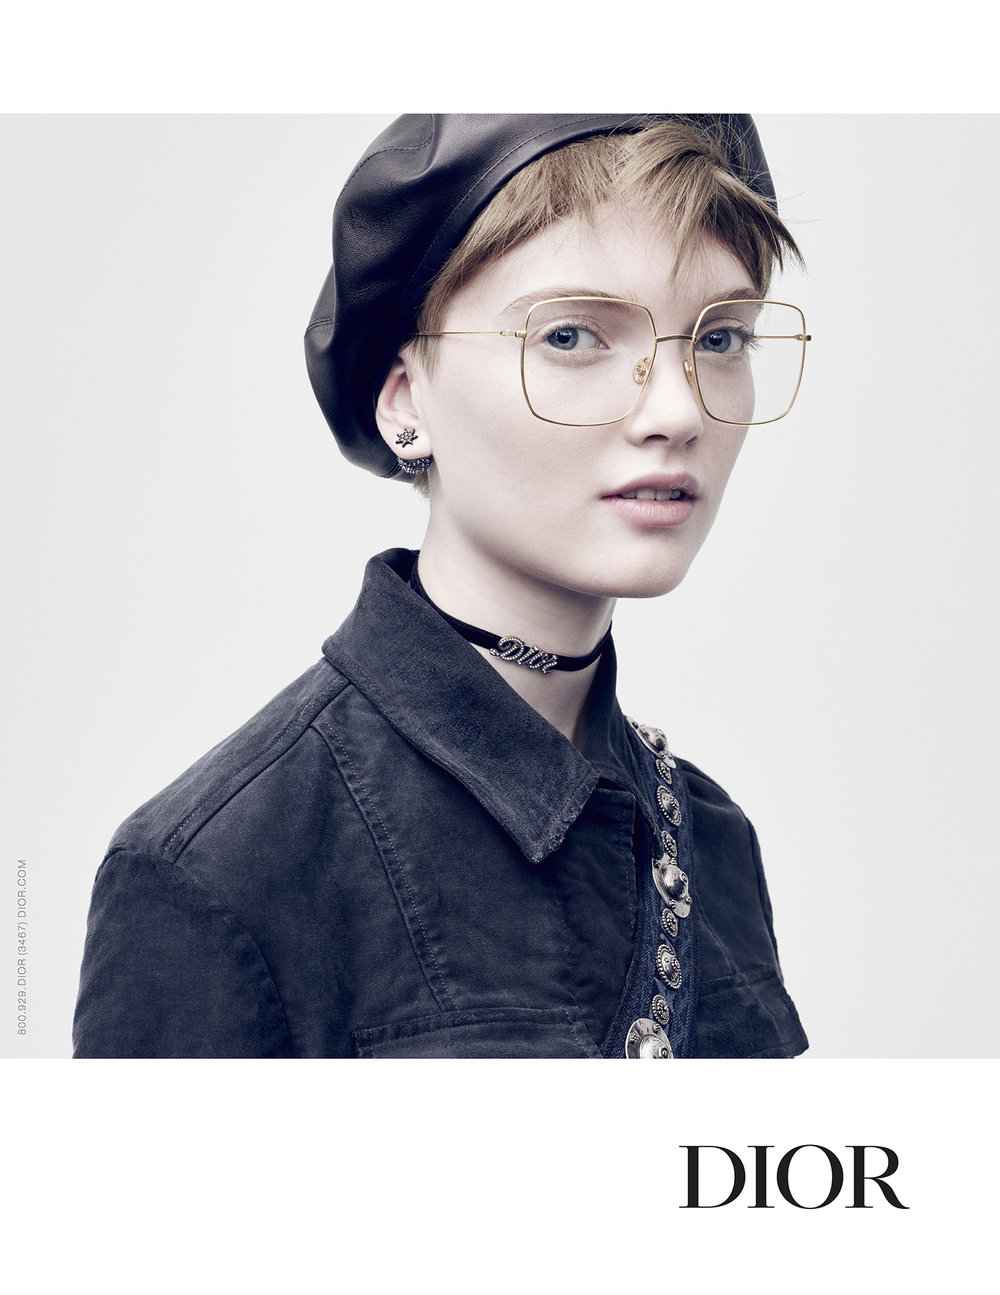 Dior Eyewear Fall/Winter 2017